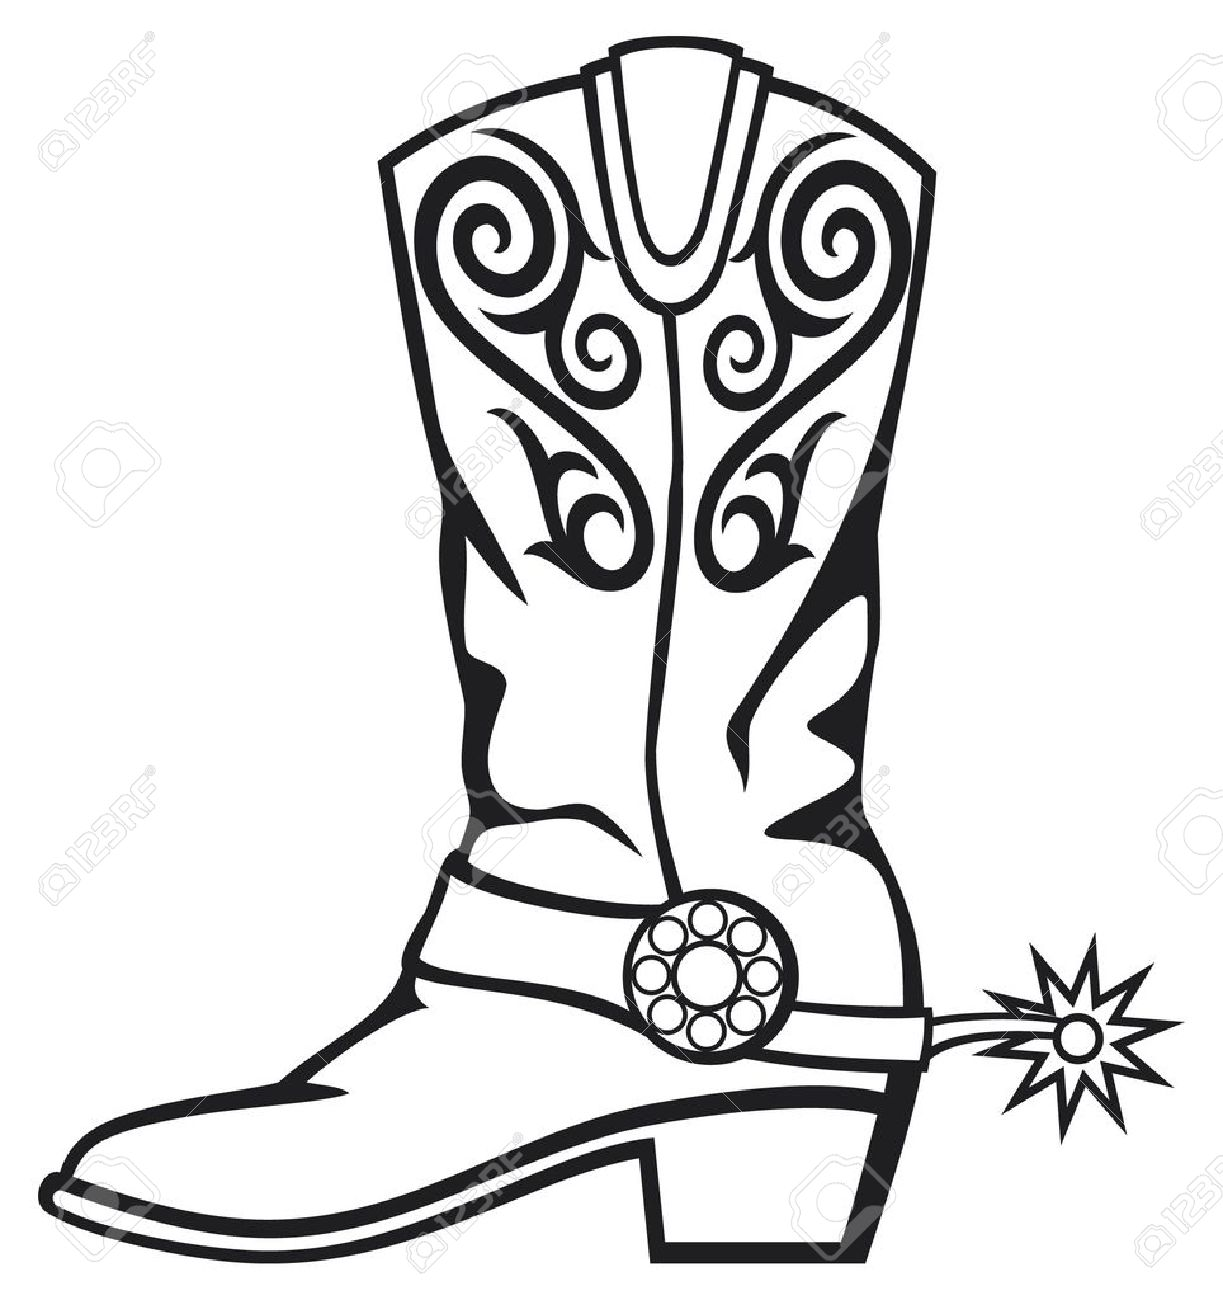 1223x1300 Cartoon Cowboy Boots